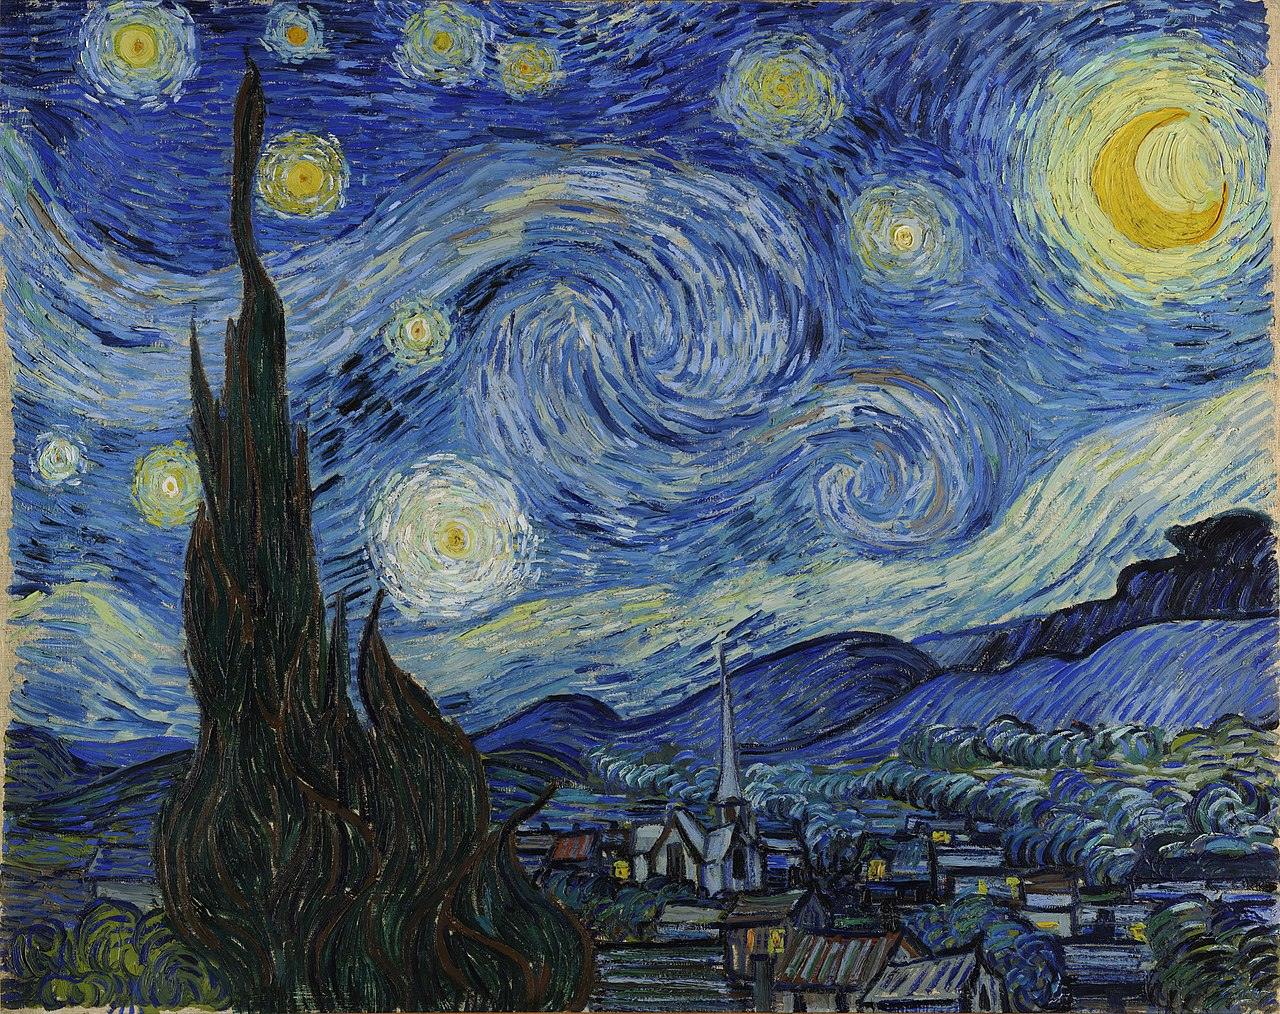 Vincent van Gogh's Starry Night painting is shown. The painting is a landscape with a brilliantly lit sky with many stars and suns scattered throughout the waves of clouds.